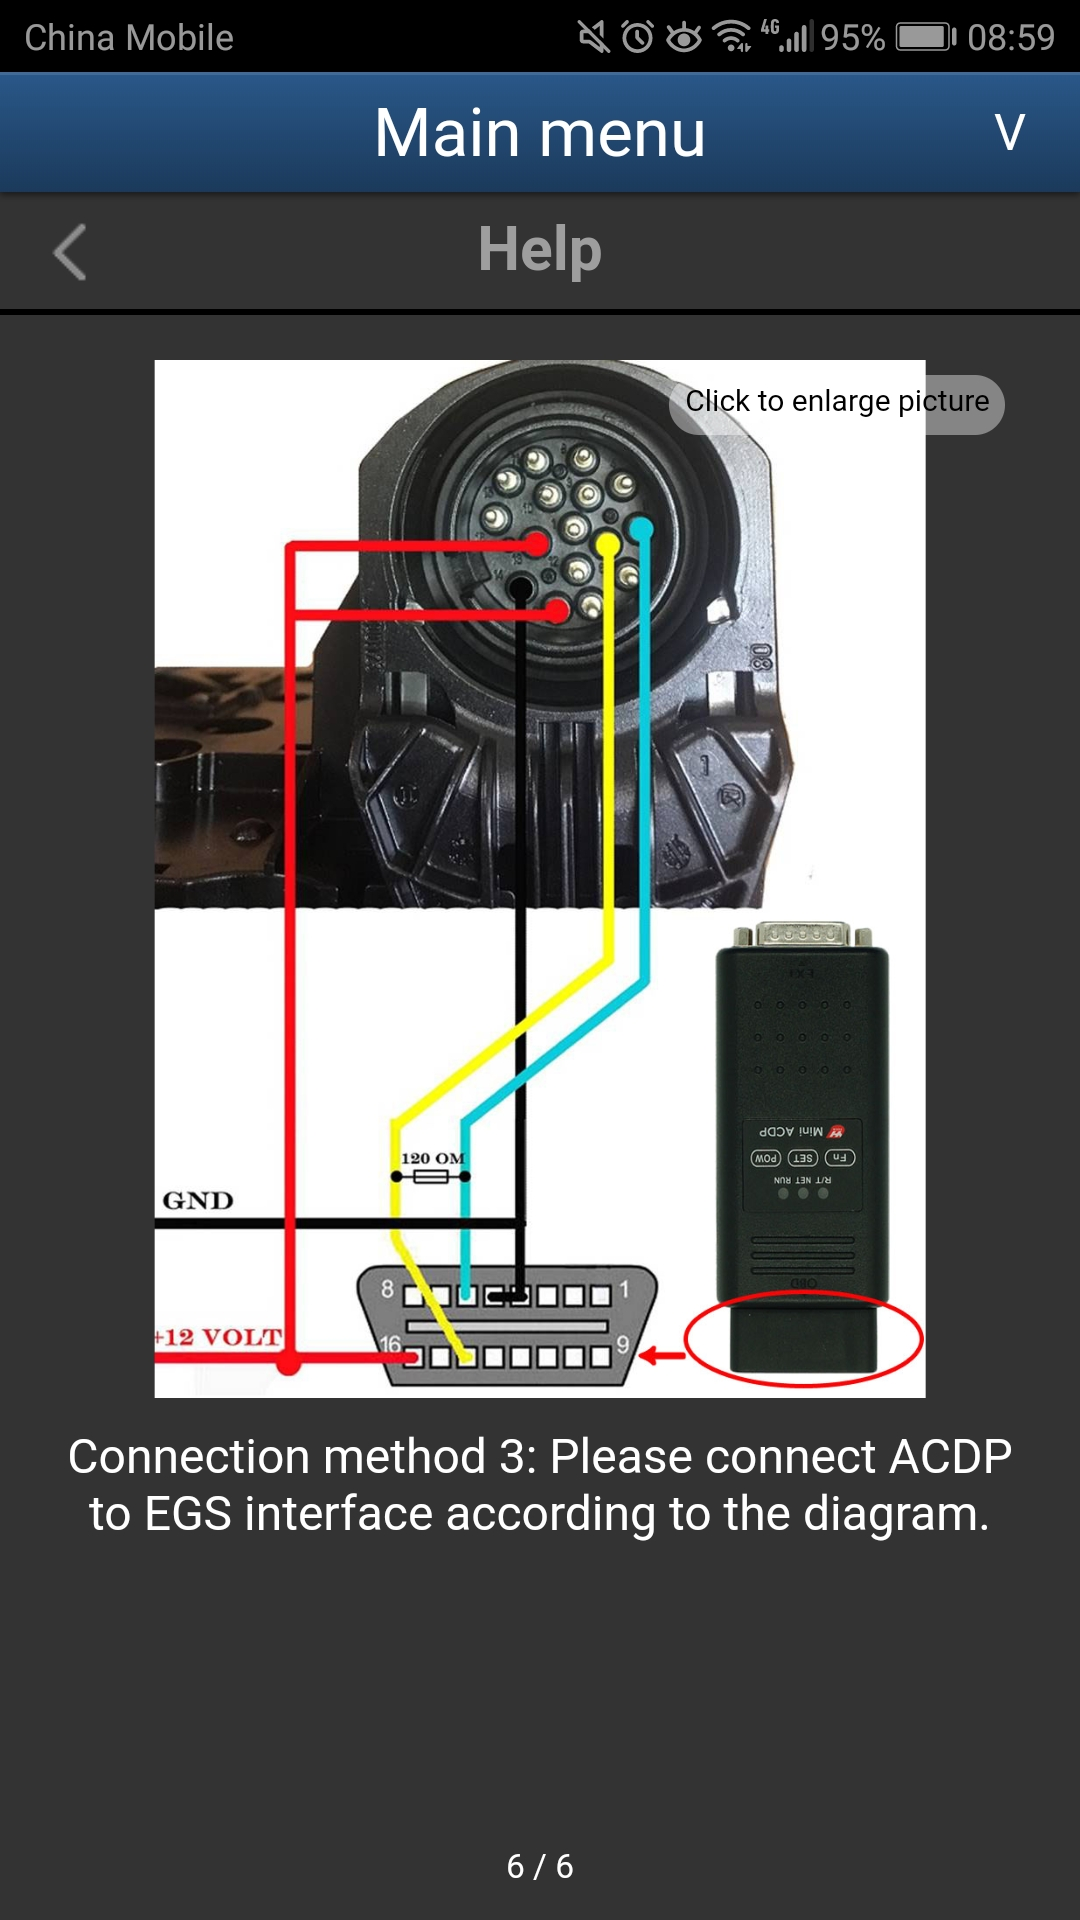 yanhua acdp clear egs isn connection 08